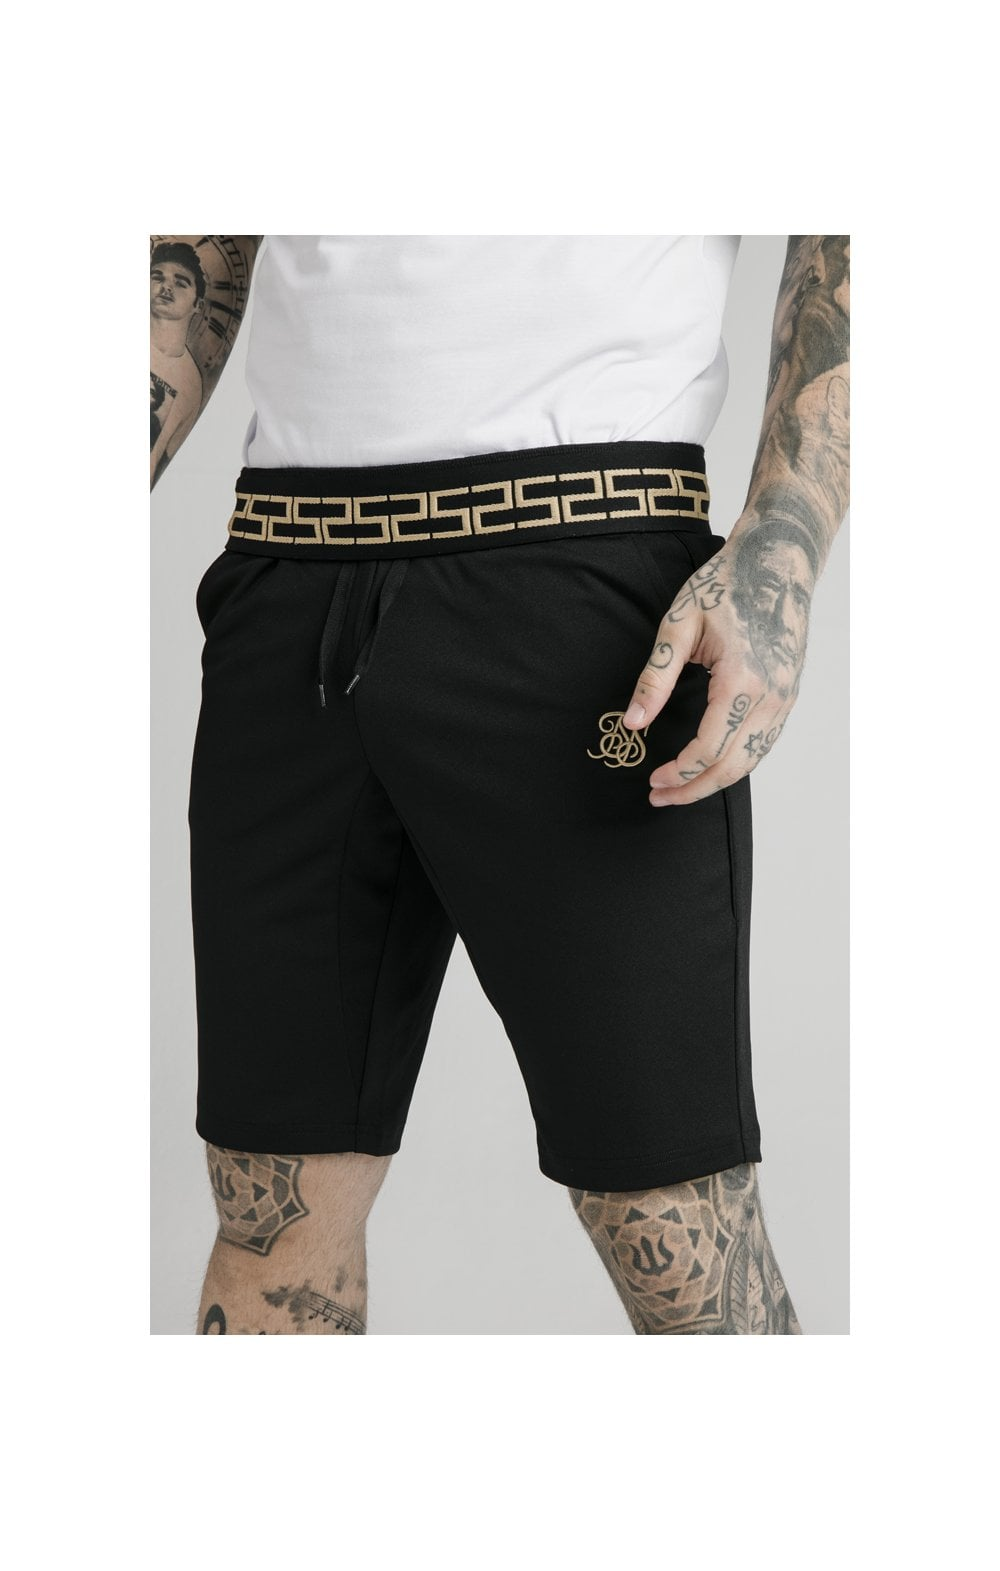 Load image into Gallery viewer, SikSilk Scope Zonal Shorts - Black & Gold